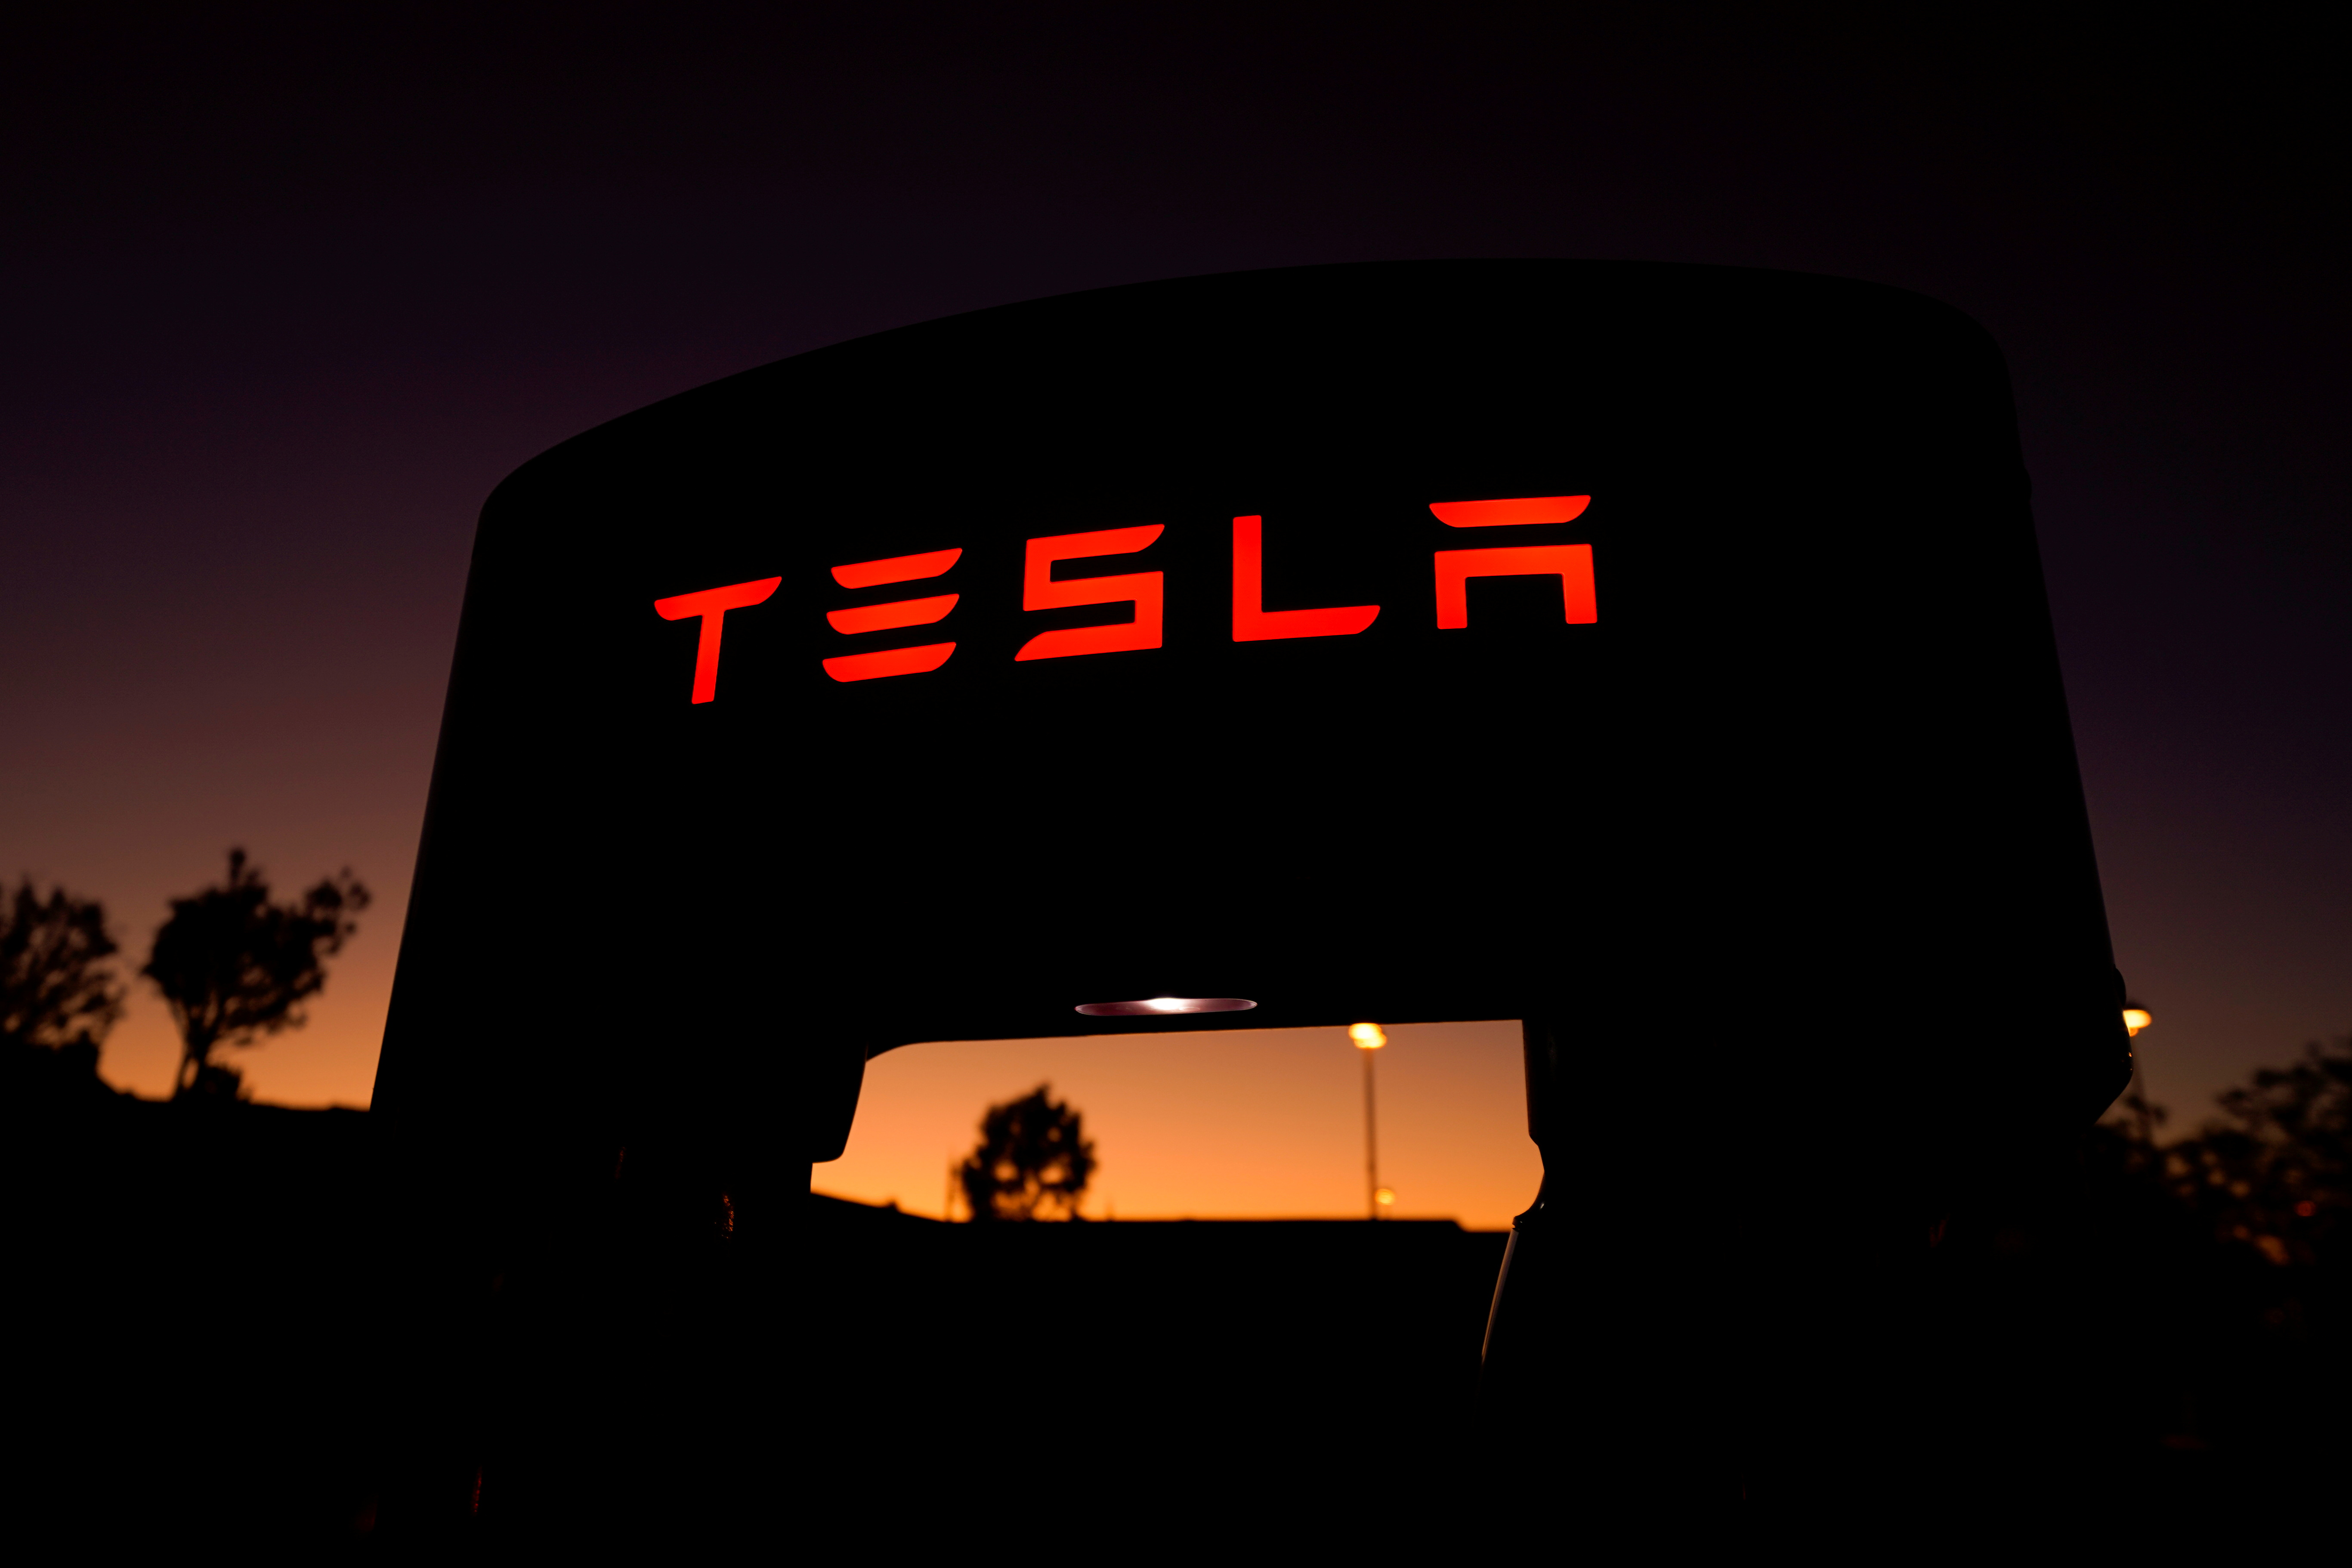 A Tesla supercharger is shown at a charging station in Santa Clarita, California, U.S. October 2, 2019. REUTERS/Mike Blake/File Photo